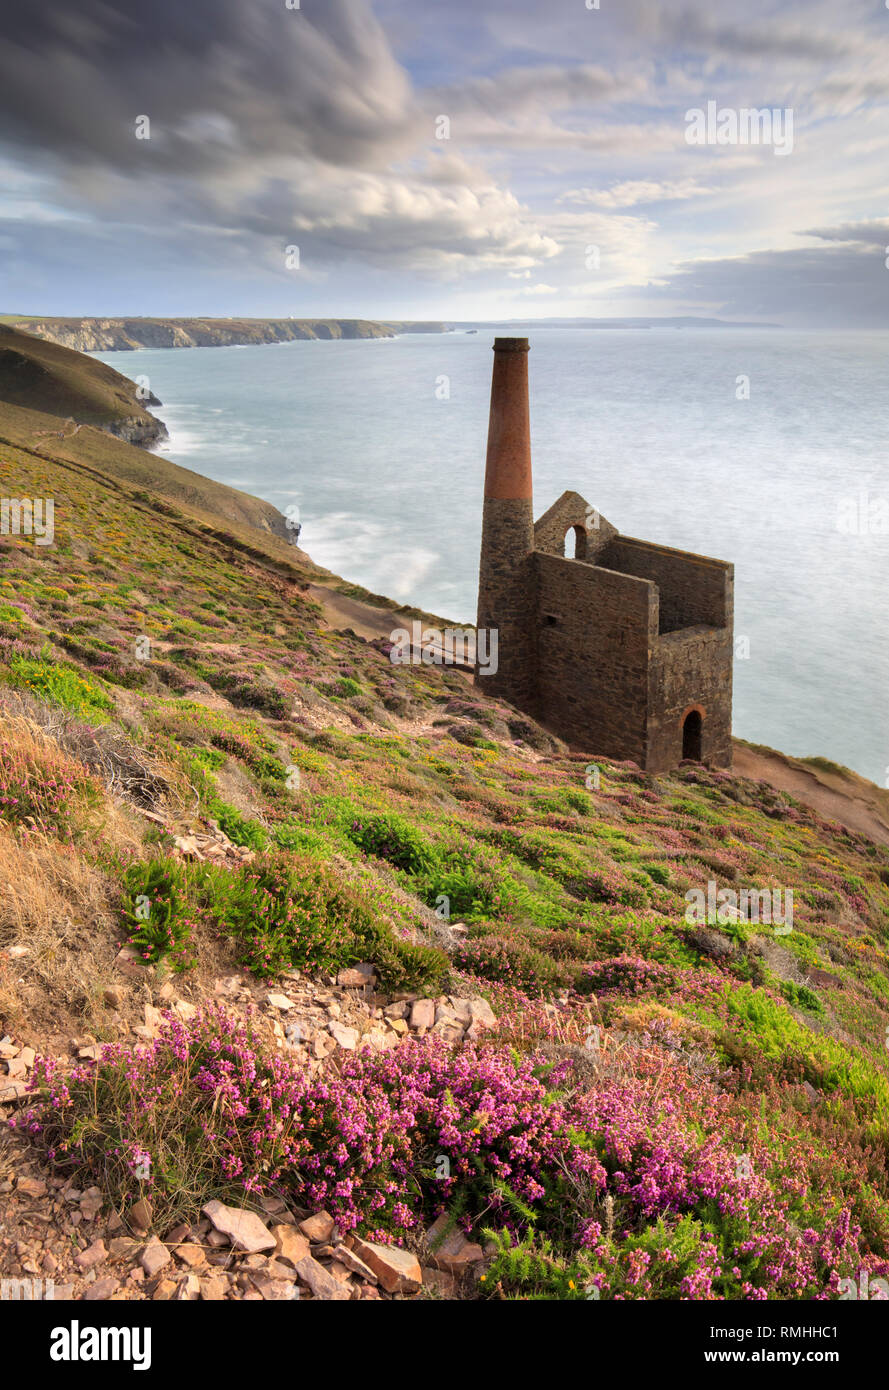 Wheal Coates Engine House near St Agnes in Cornwall. - Stock Image